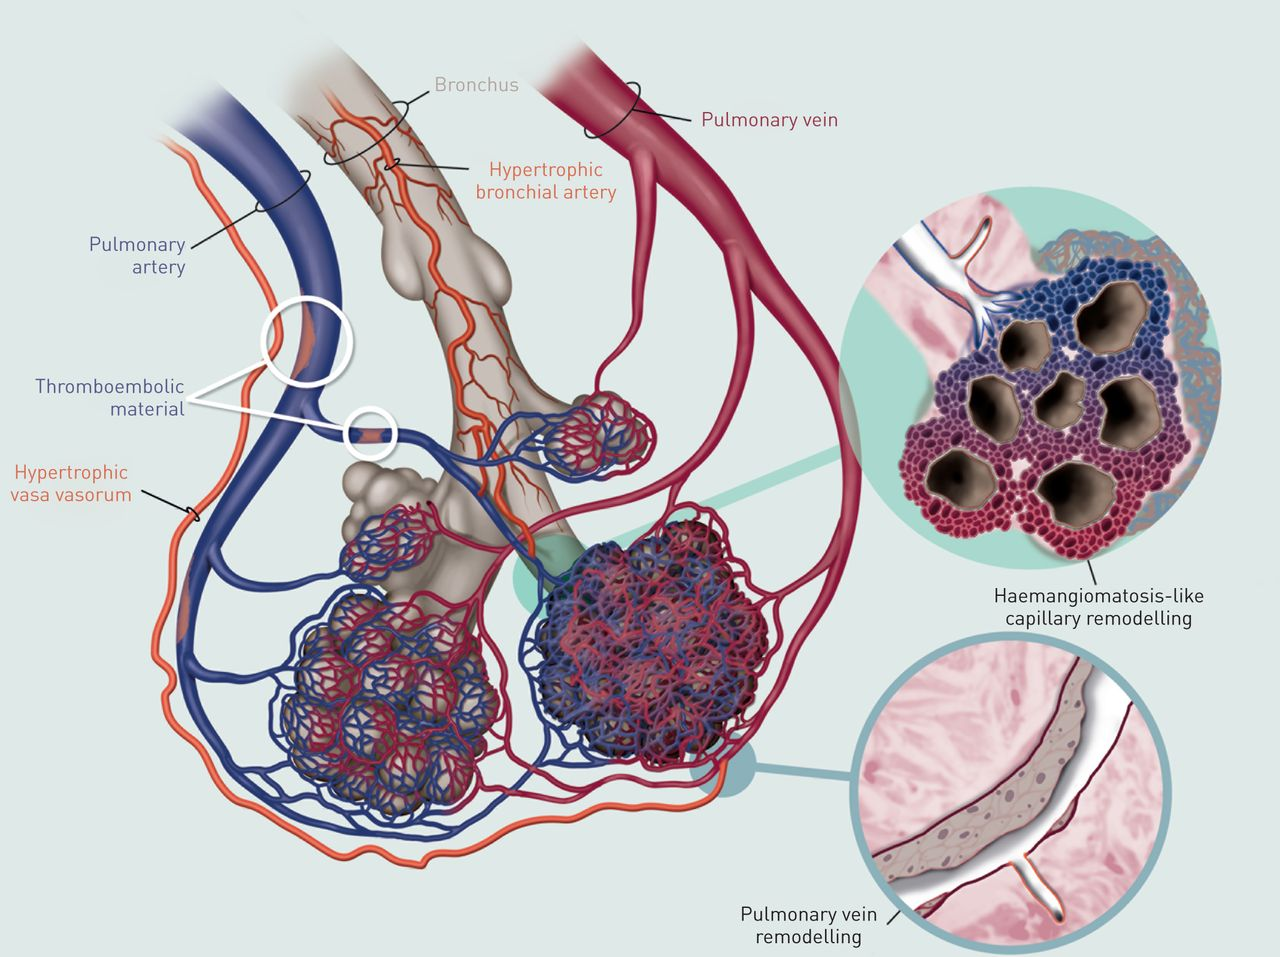 microvascular disease in chronic thromboembolic pulmonary hypertension  a role for pulmonary